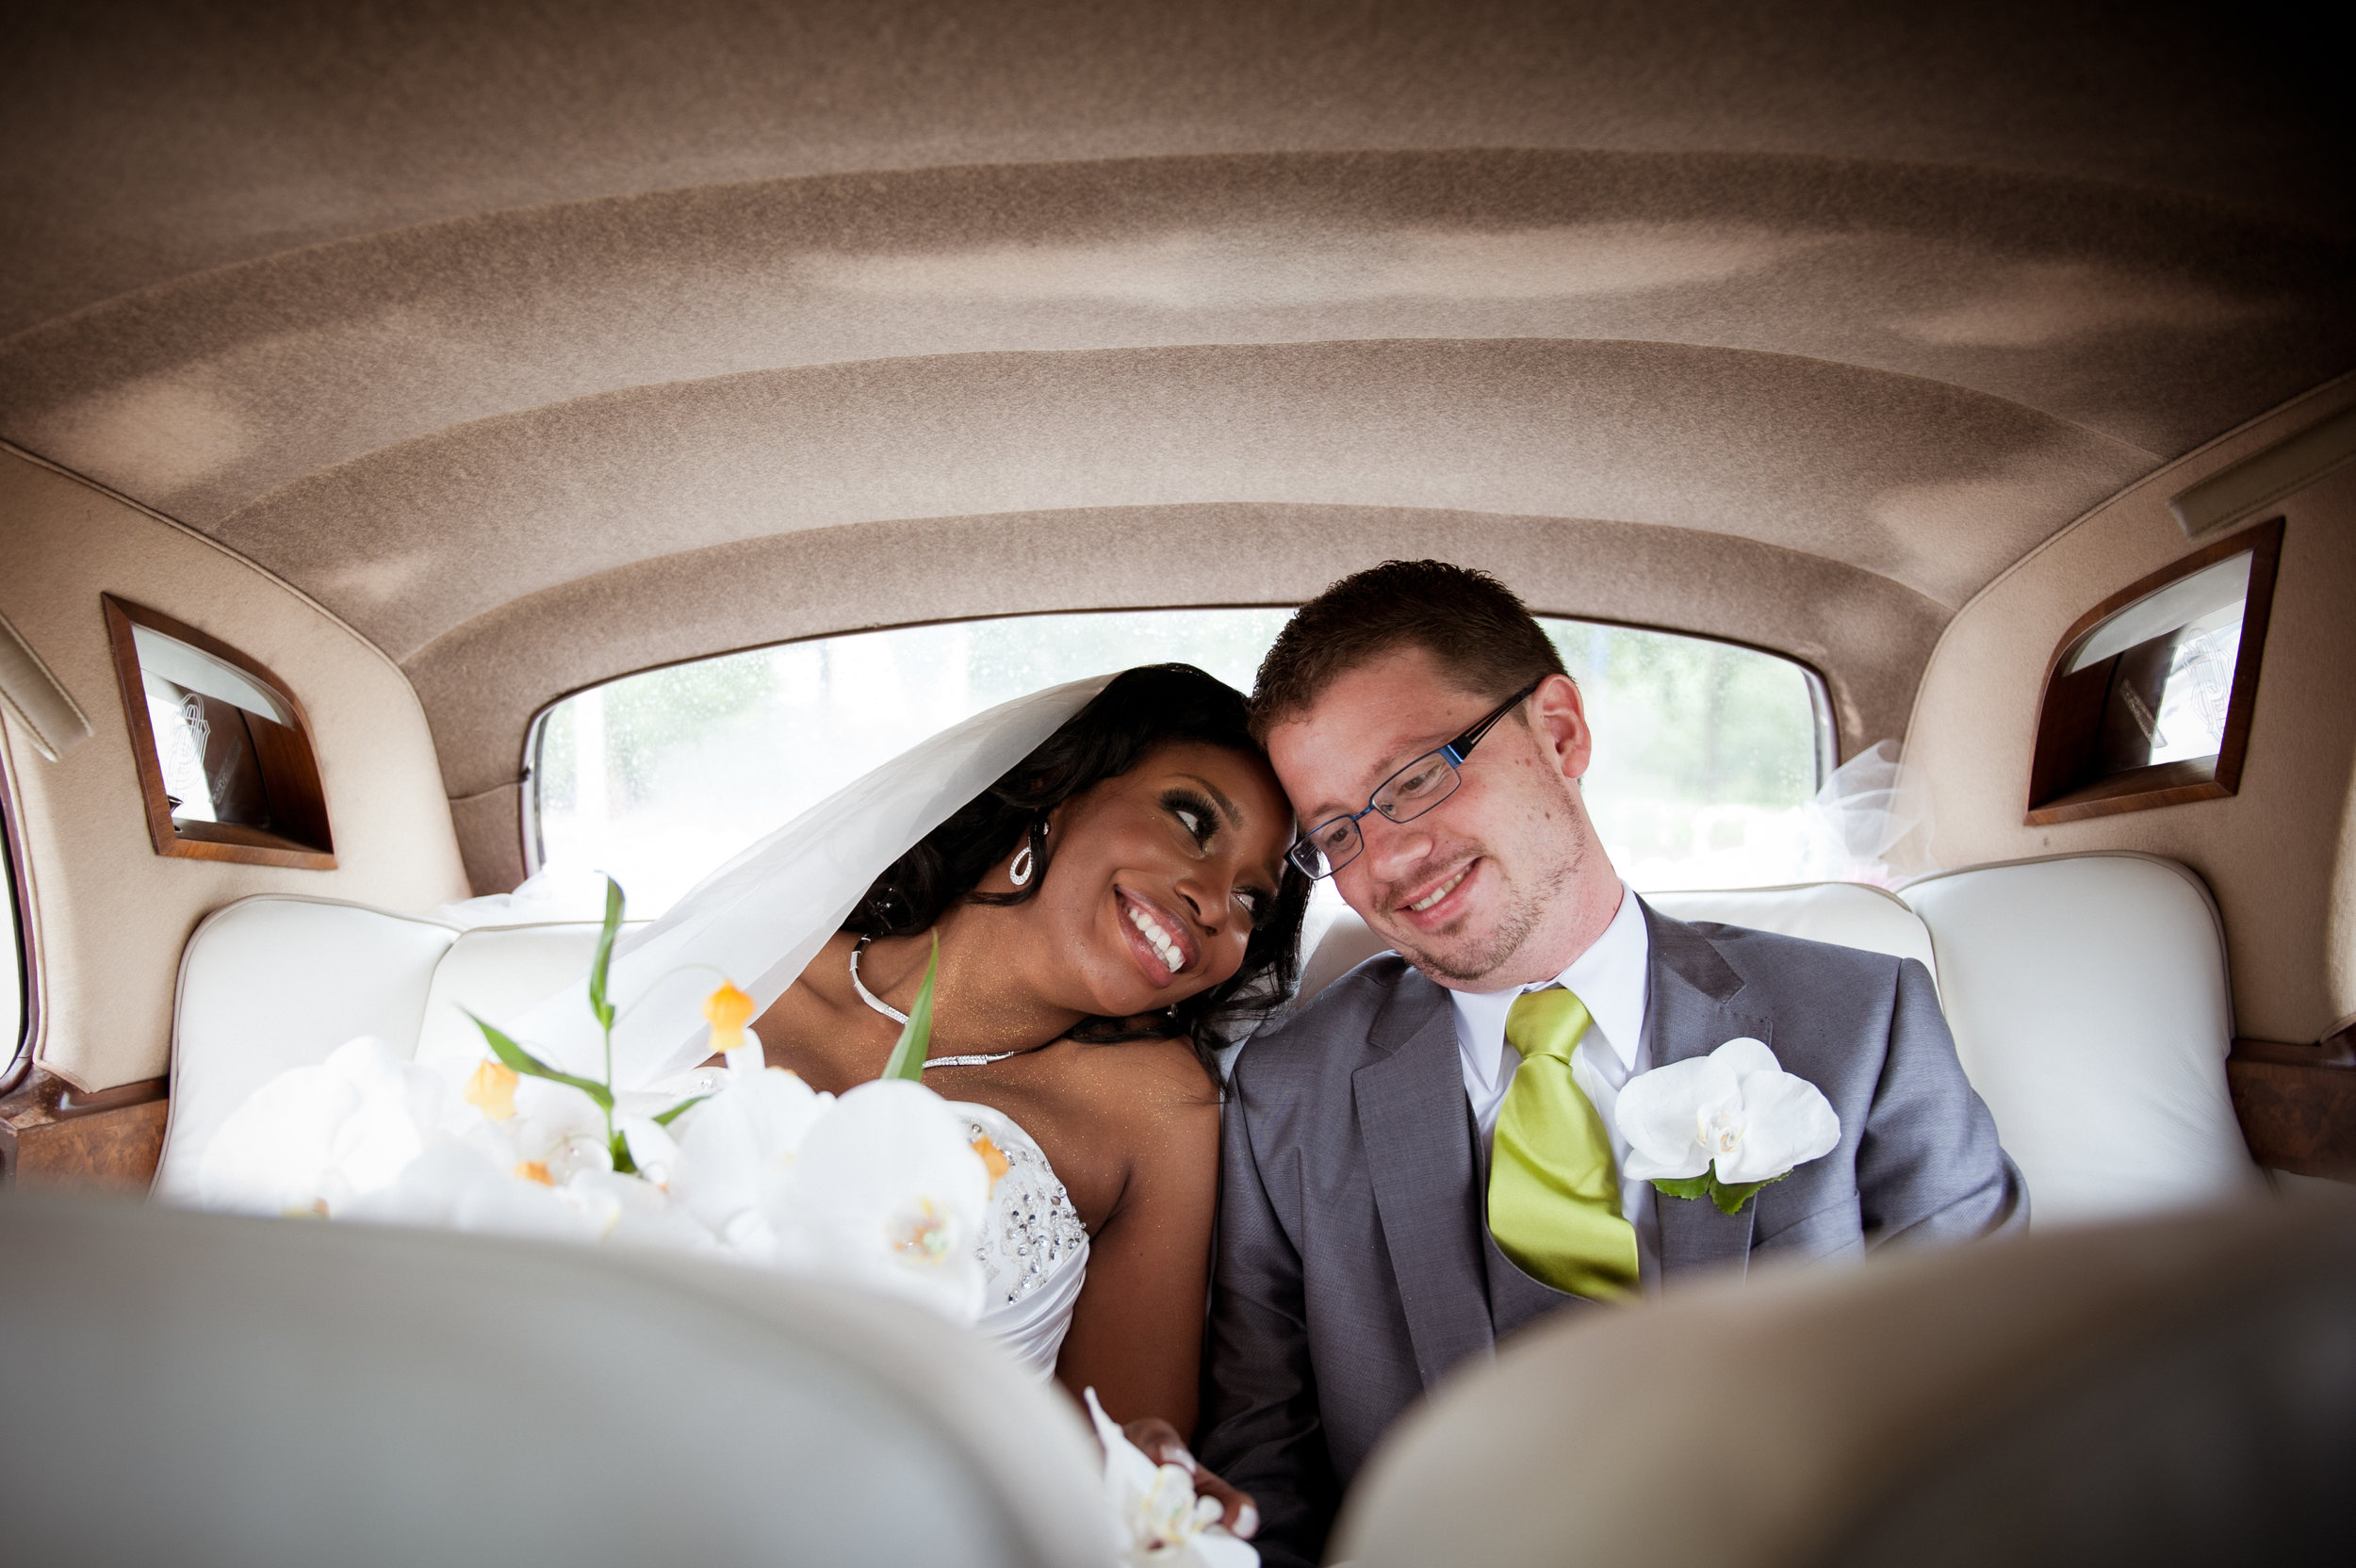 Worth the Drive - © 2010Genre: Country/Modern CountryTheme: Wedding/Proposal